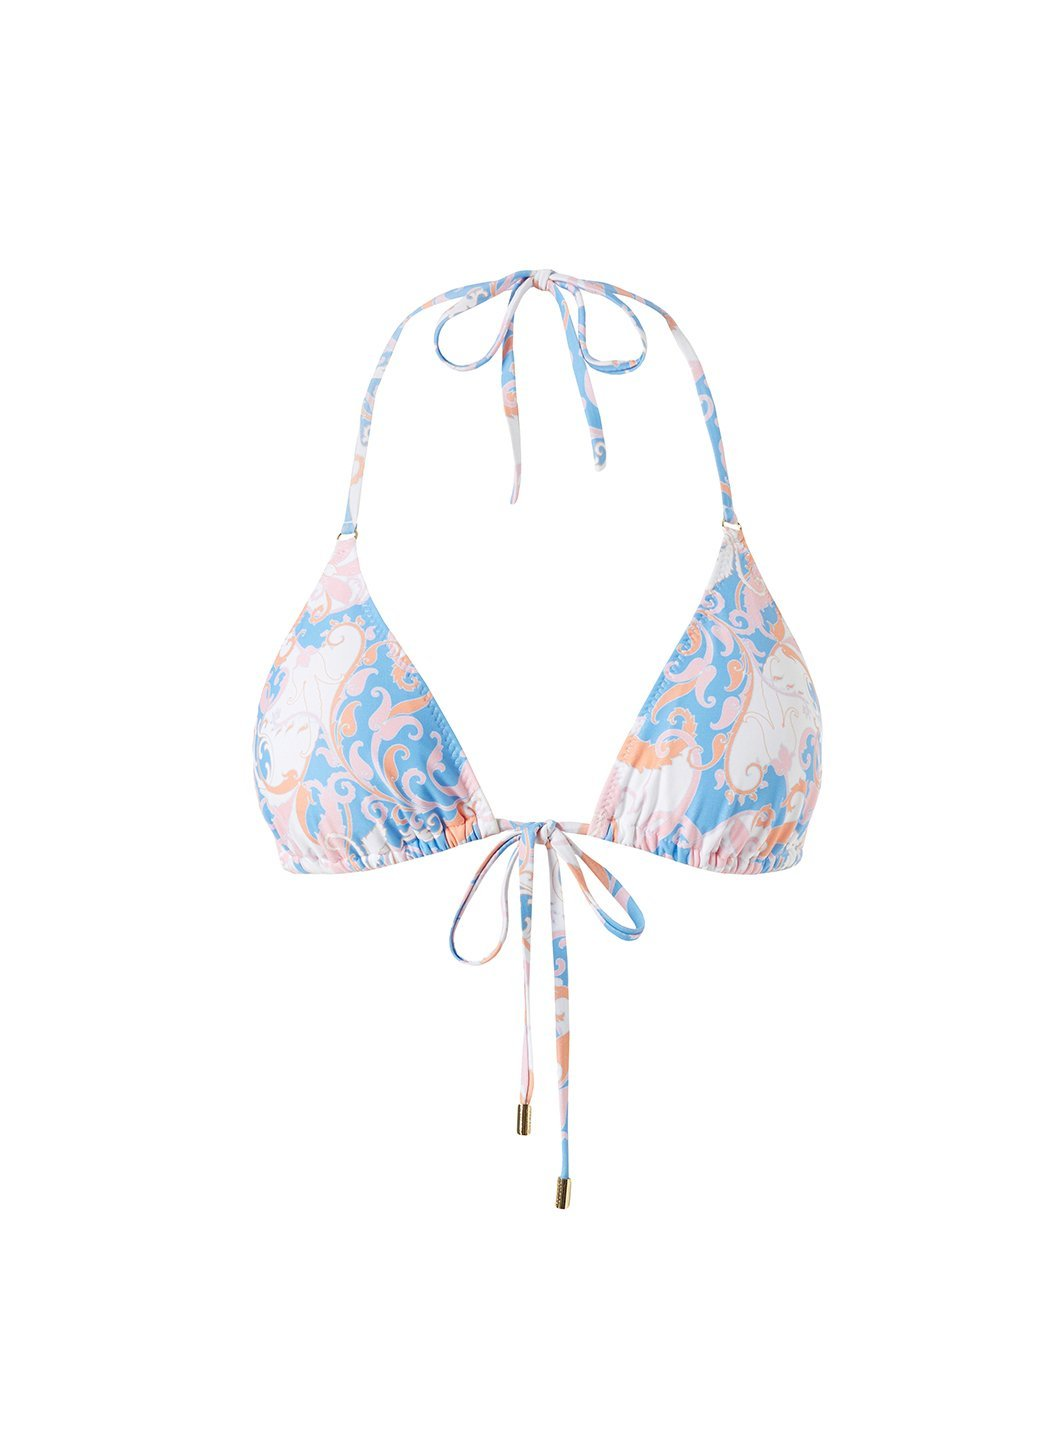 Porto Baroque Blush Bikini Top Cutout